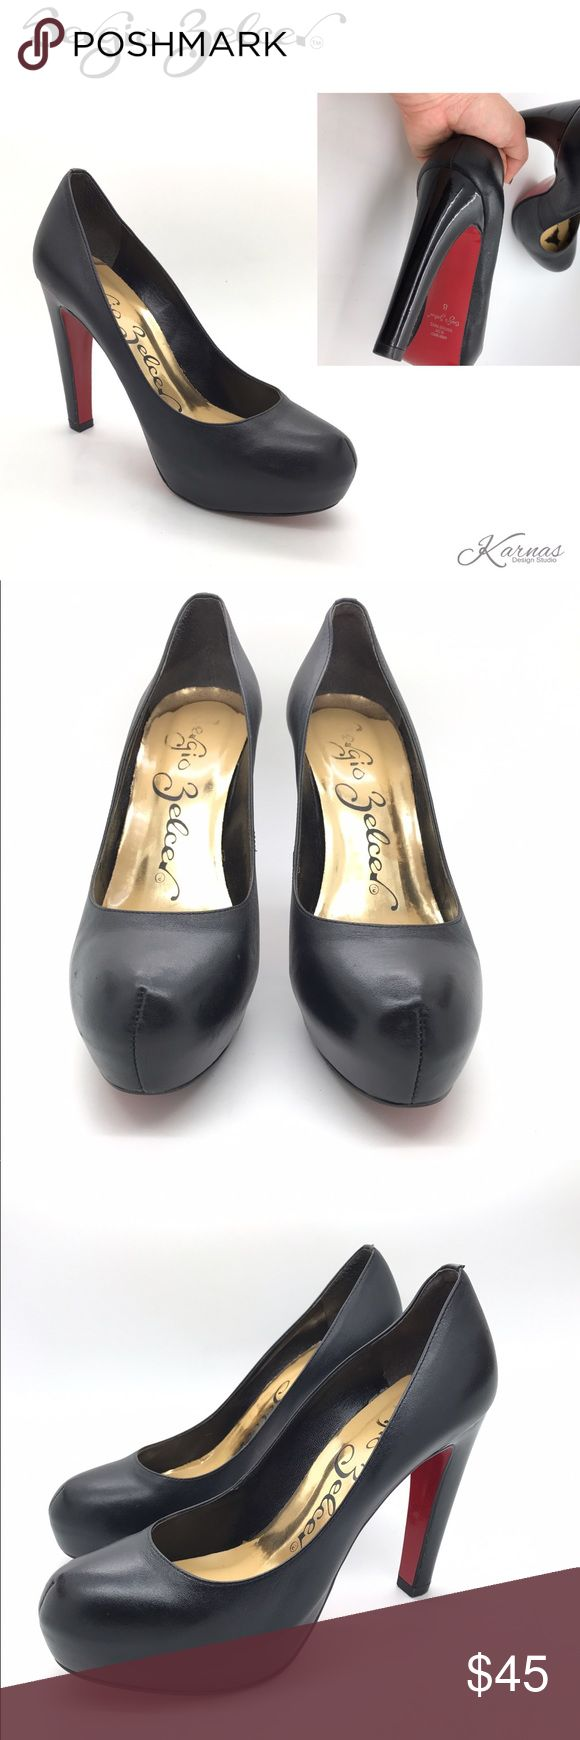 """👠SERGIO ZELCER Black Leather Heels Red Bottoms 8 Beautiful condition. Black leather upper with patent leather heels. Size 8 by Sergio Zelcer. I stored these in a plastic shoe box, no mfg. box is included. Small light scuff on one heel but got pics of all angles for you! I no longer wear this type of heel. About a 4.75"""" heel & a 1.25"""" platform. Please ask any questions before purchase. I offer 10% on bundles and ship daily! Happy Poshing! Sergio Zelcer Shoes Heels"""